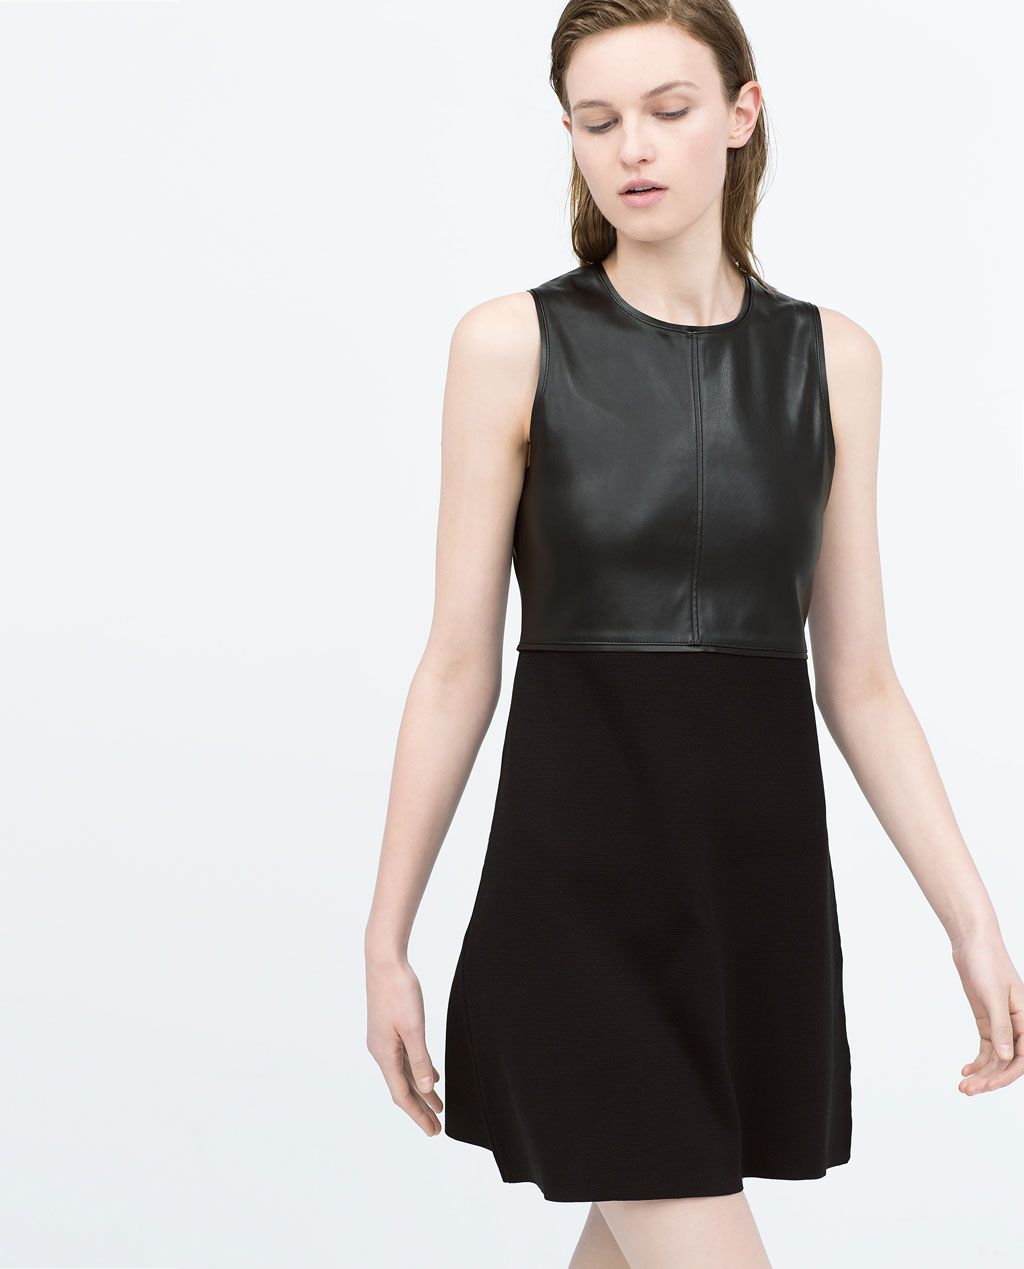 Image of faux leather combination dress from zara